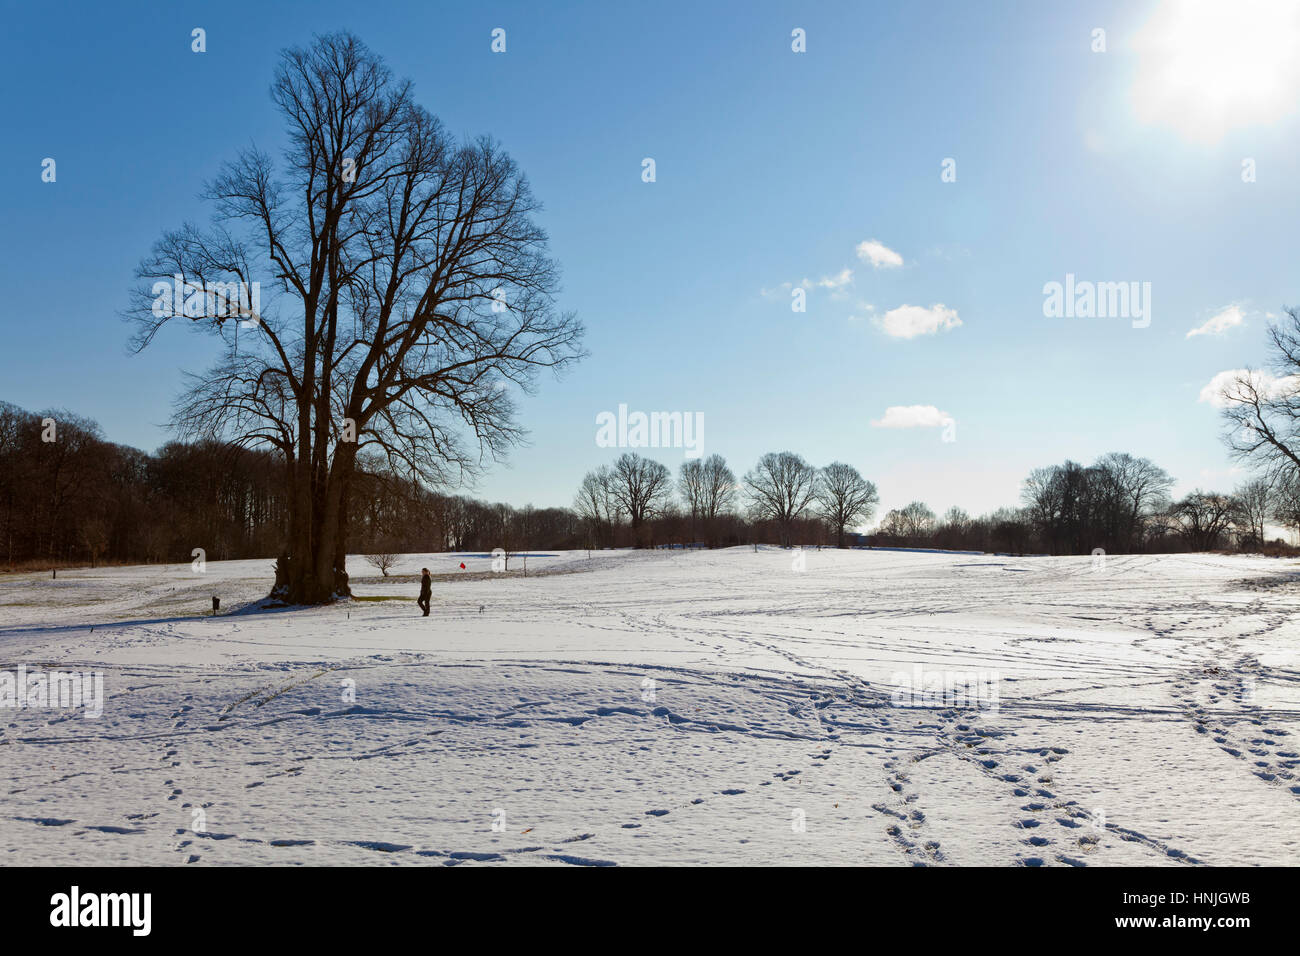 A sunny winter landscape, a blue sky, bare trees and patterns and circles of footprints on grass fields in snow - Stock Image